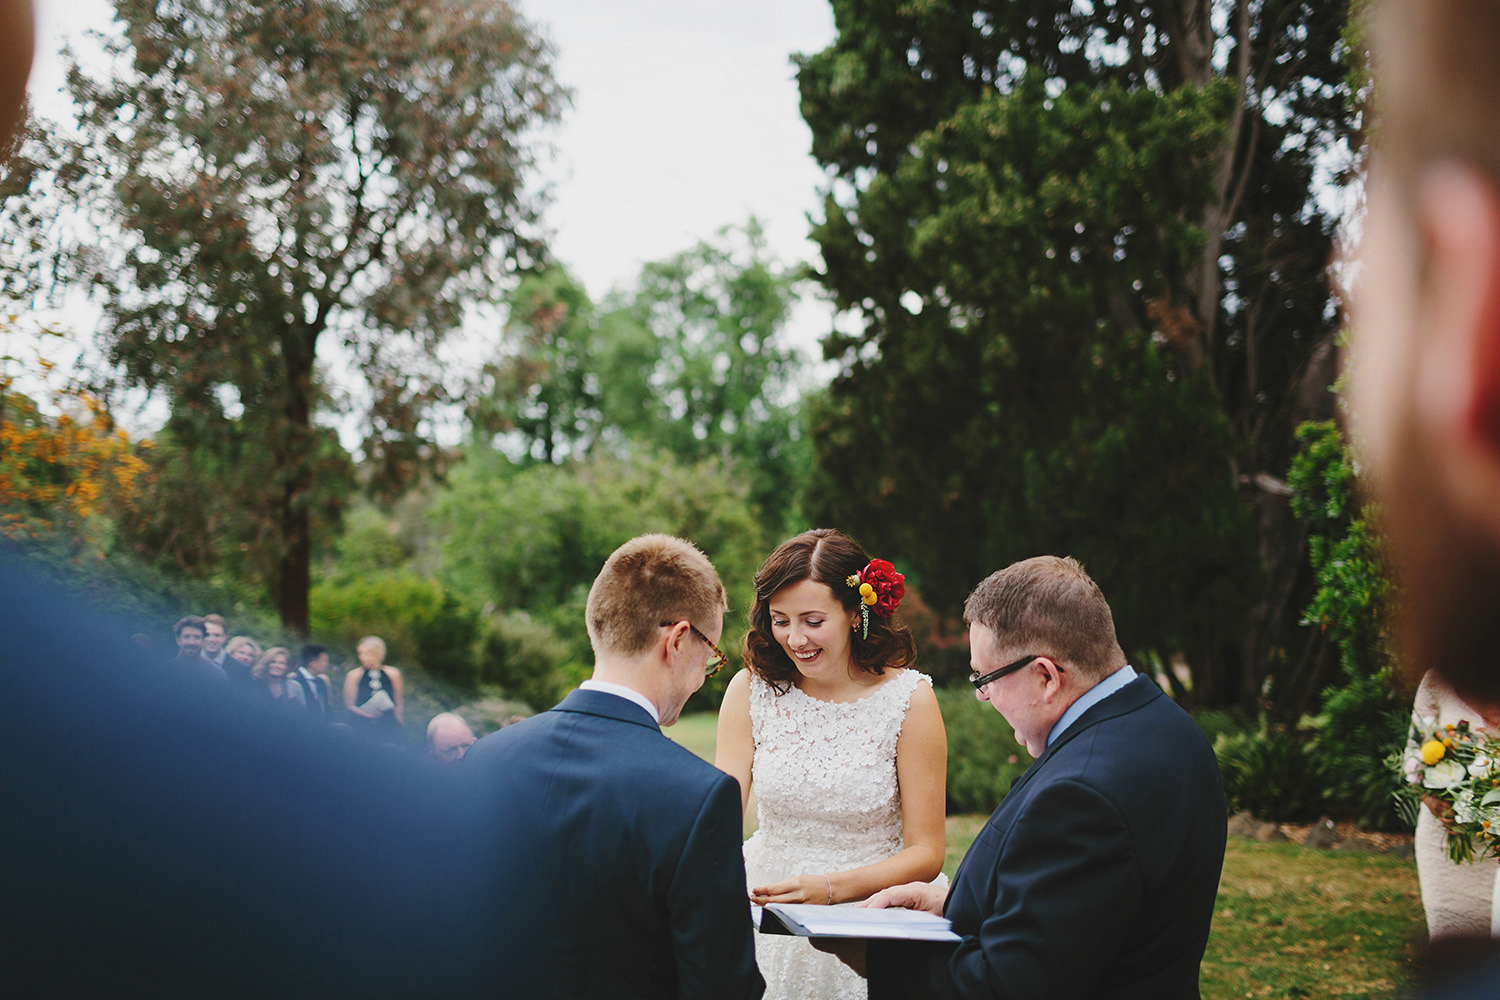 Melbourne_Garden_Wedding_Nick_Kim083.JPG